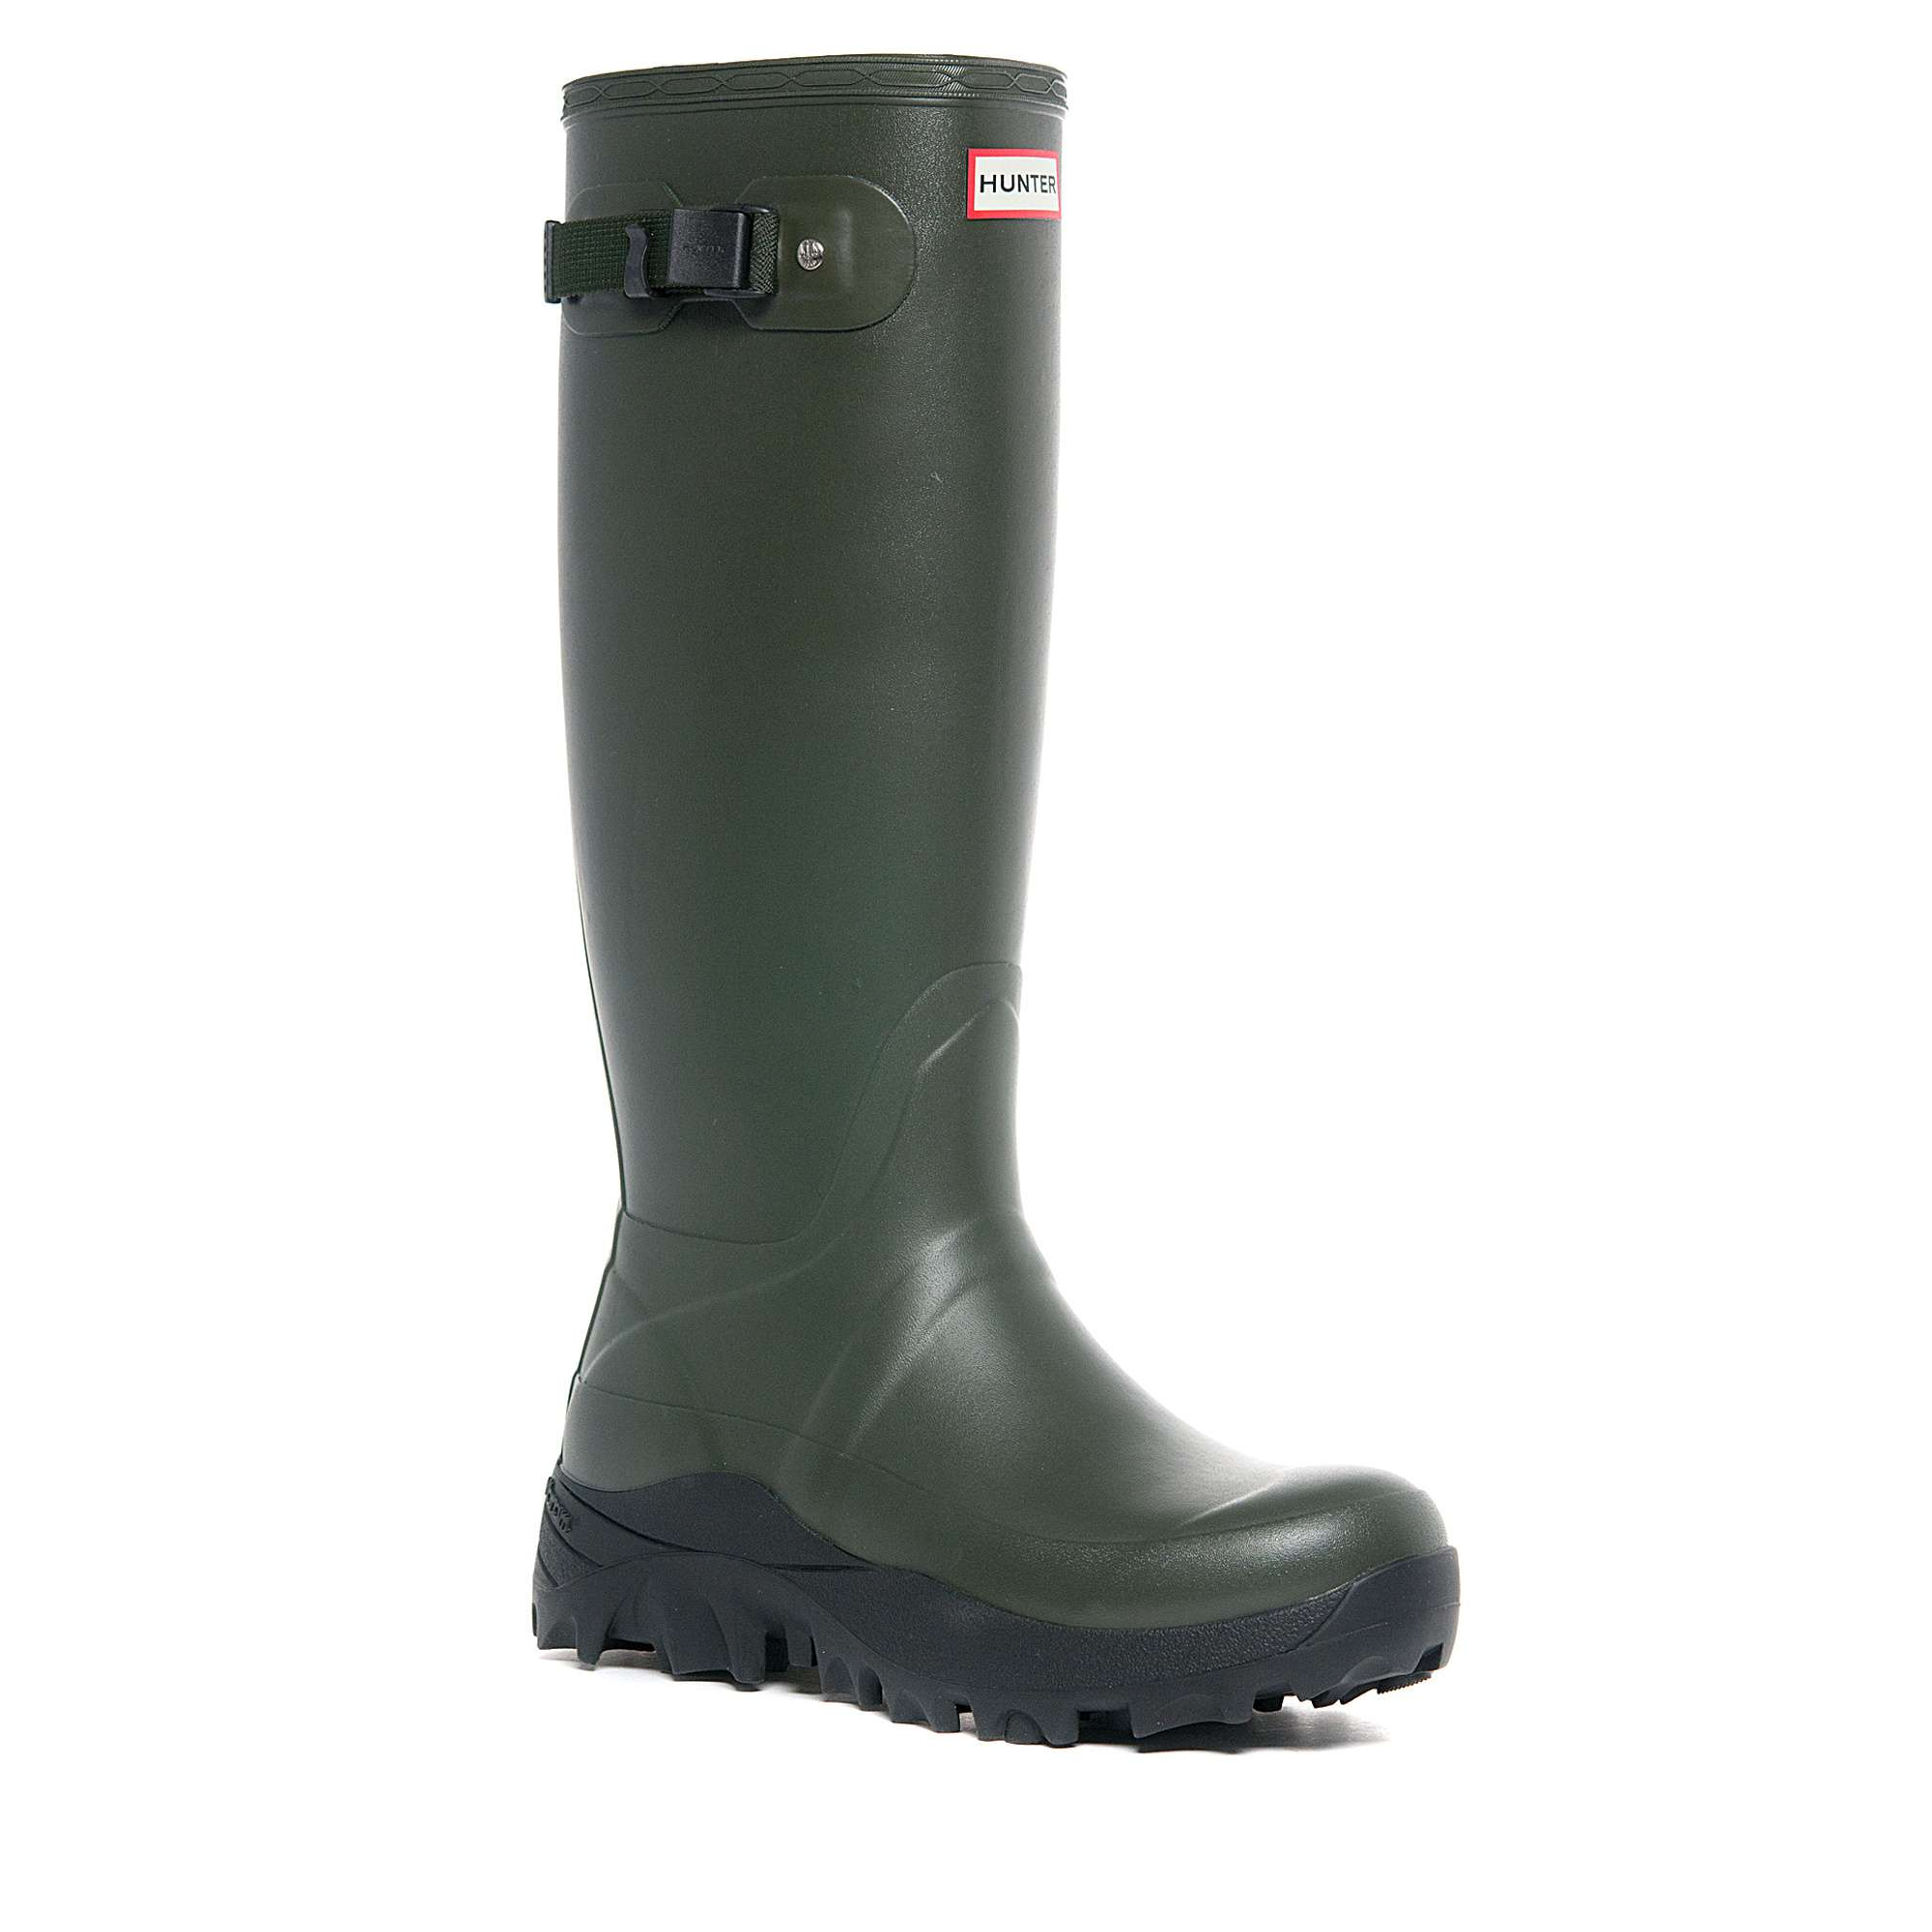 HUNTER Unisex Tall Snow Wellies